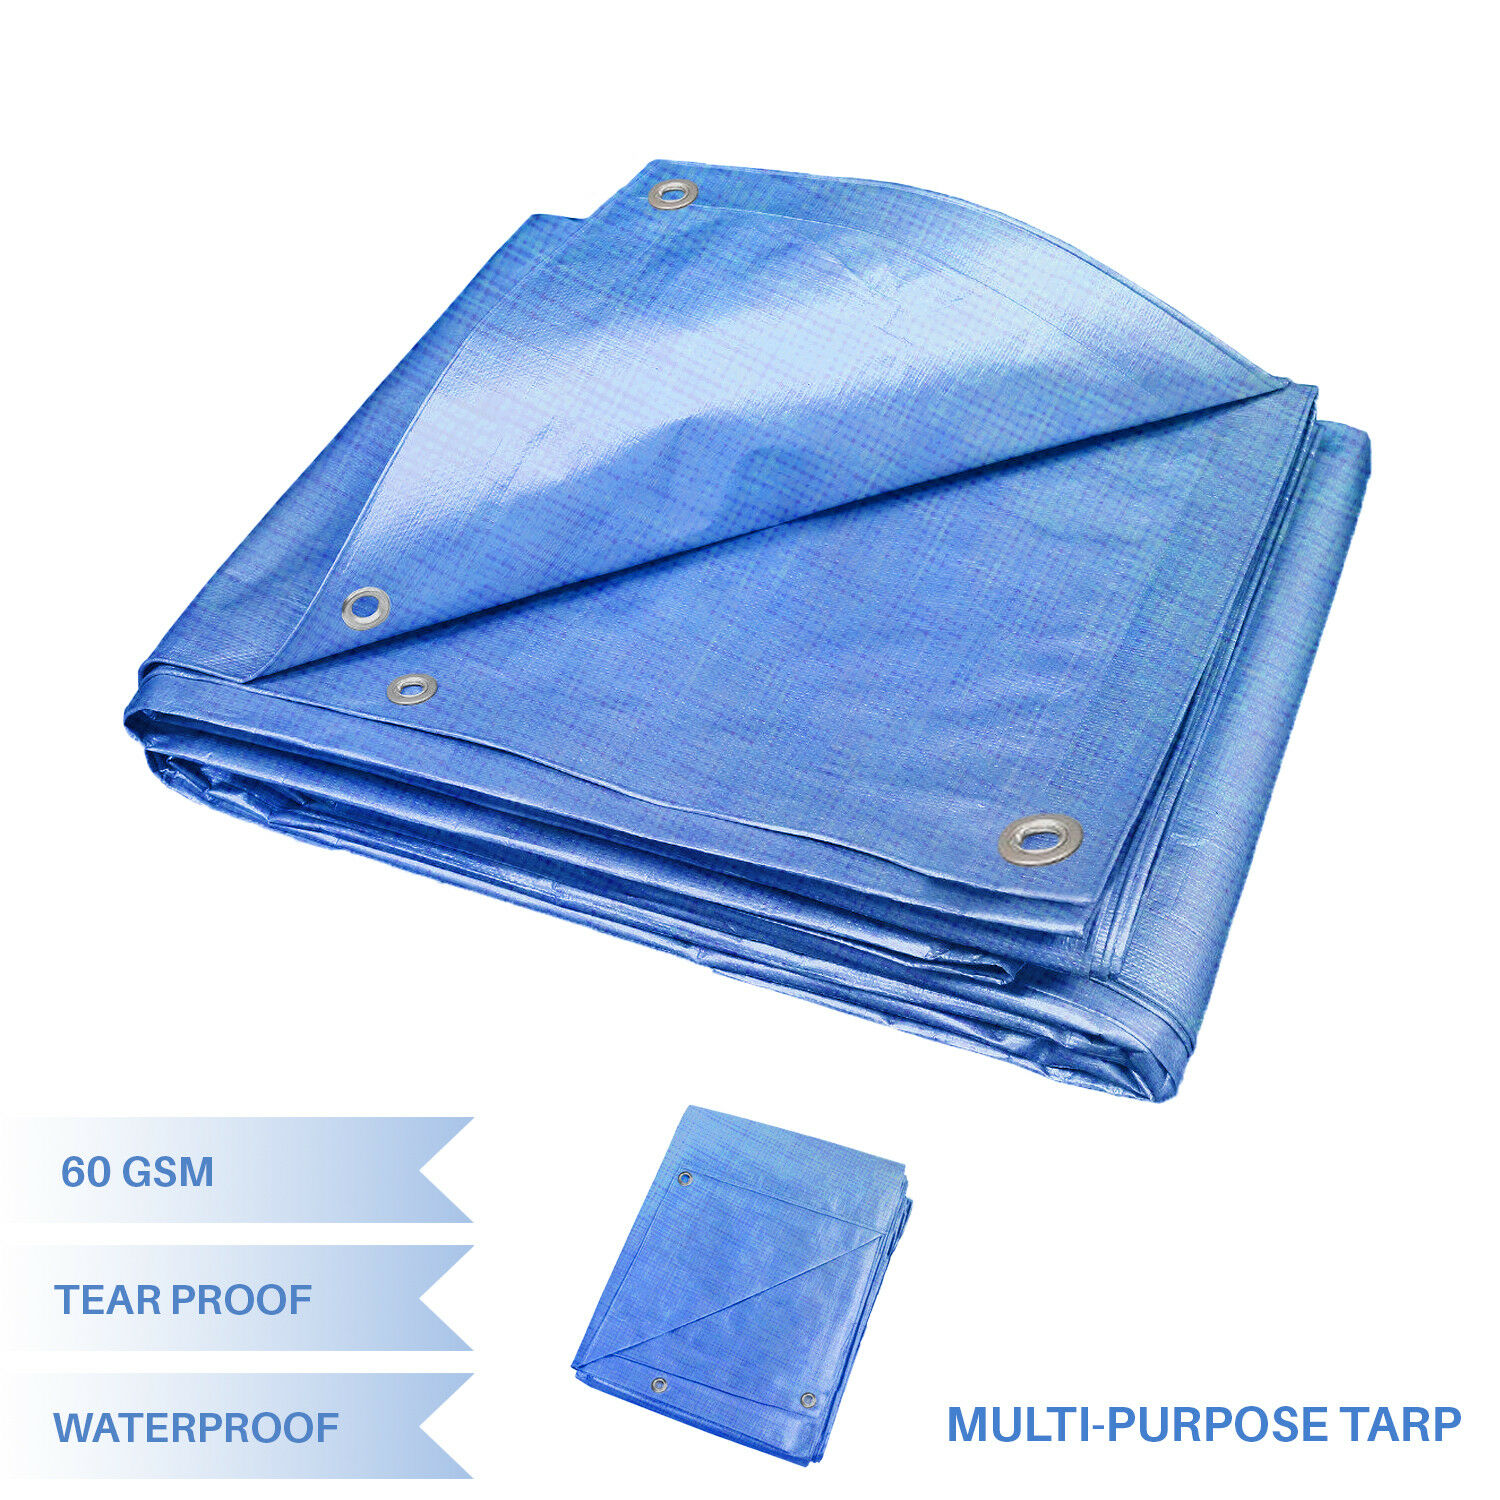 EK Blue Multi-purpose Waterproof Poly Tarp Cover Tent Shelter Camping Tarpaulin